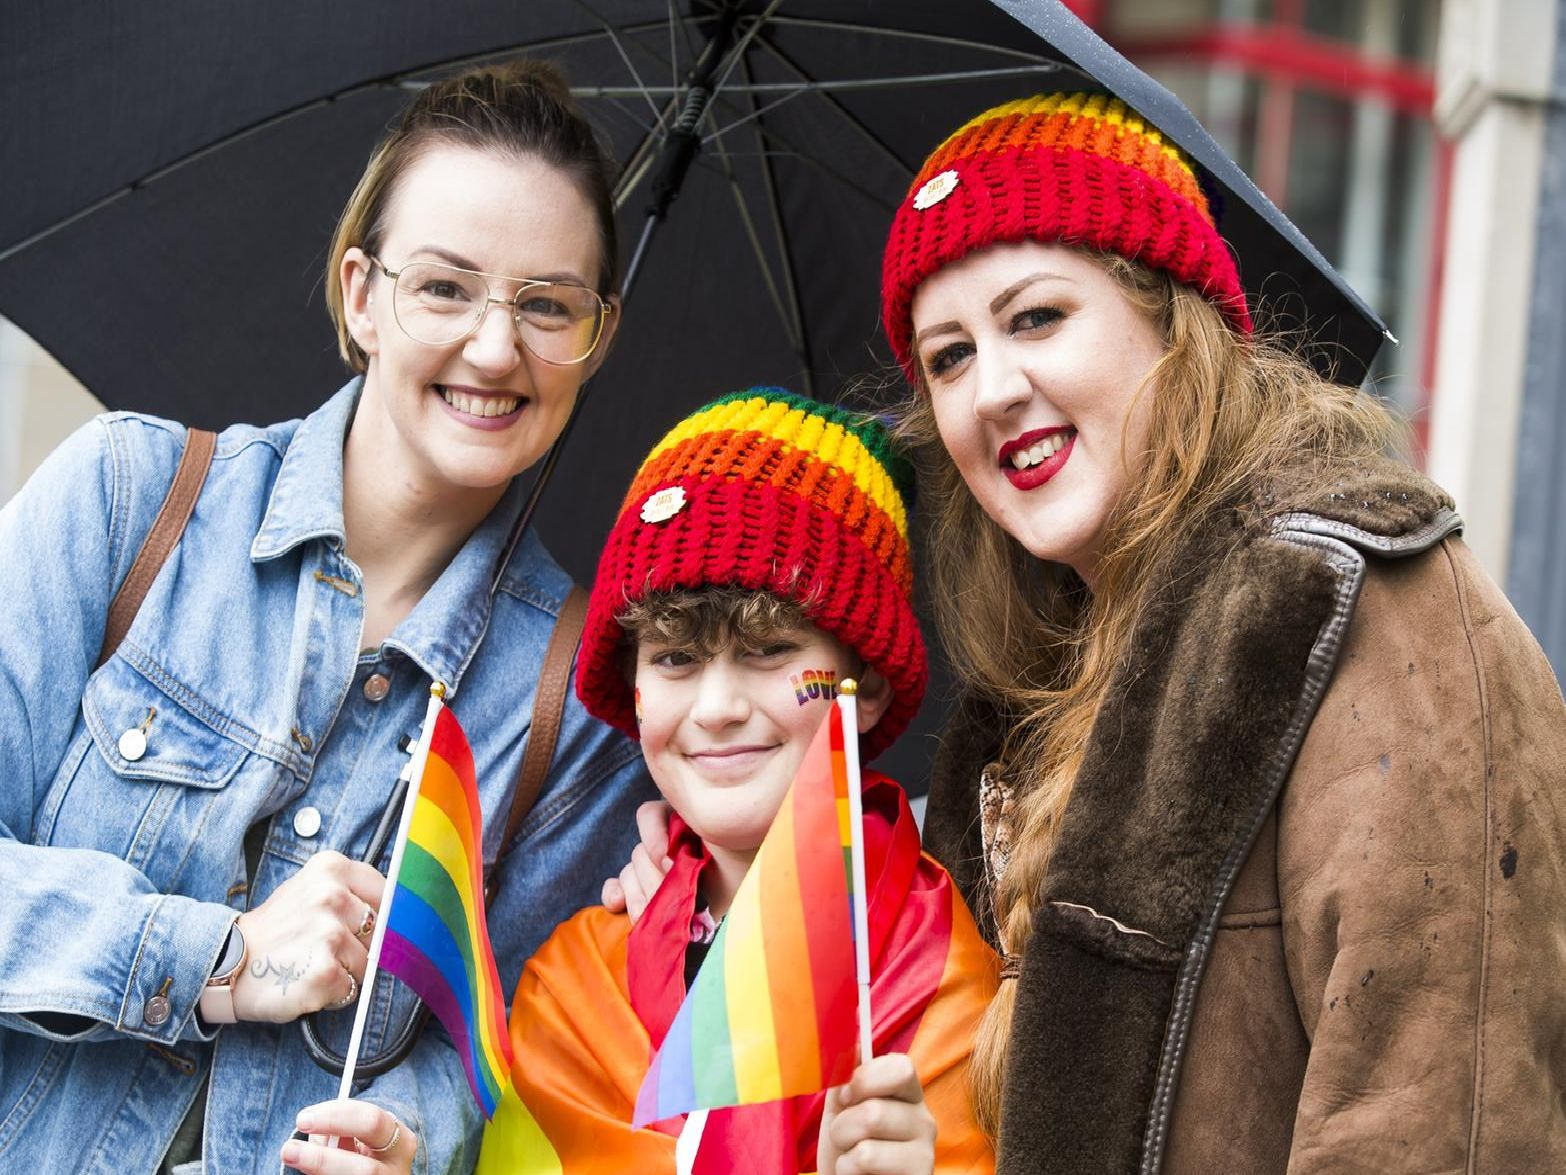 Calderdale Pride, Halifax. From the left, Nicola Wright, Junaid Jones 12, and Zoe Jones (from Big Brother).